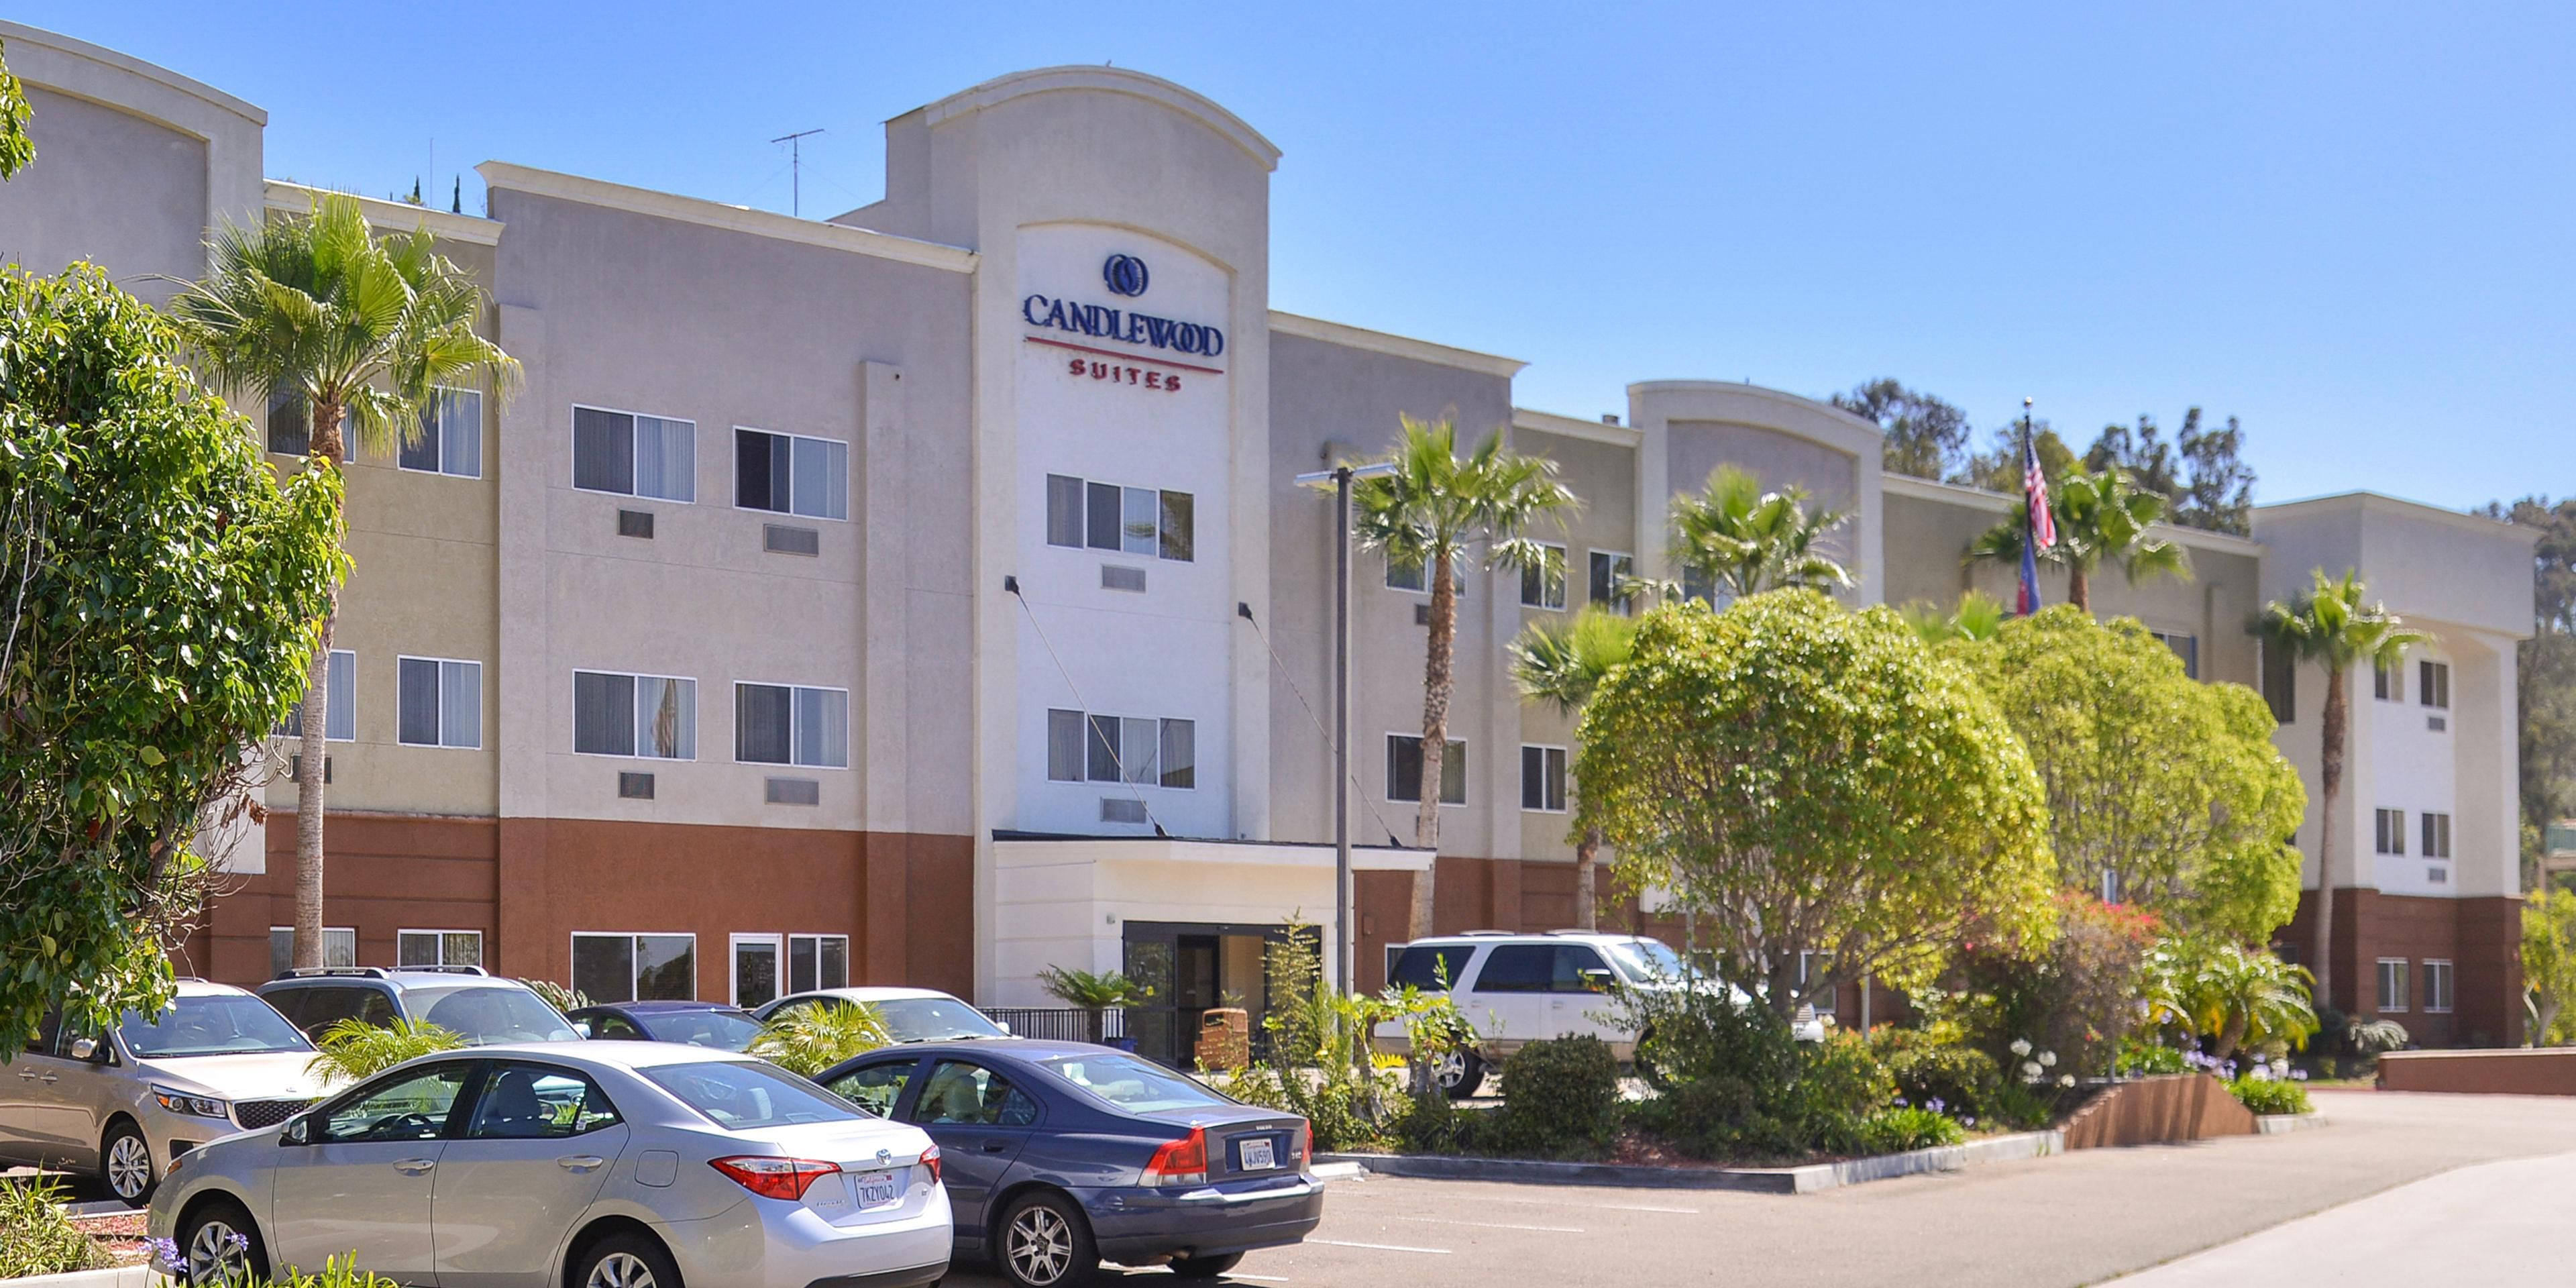 San Diego 2 Bedroom Suites 2 Bedroom Suites San Diego Area Stateroom Layout Provided By